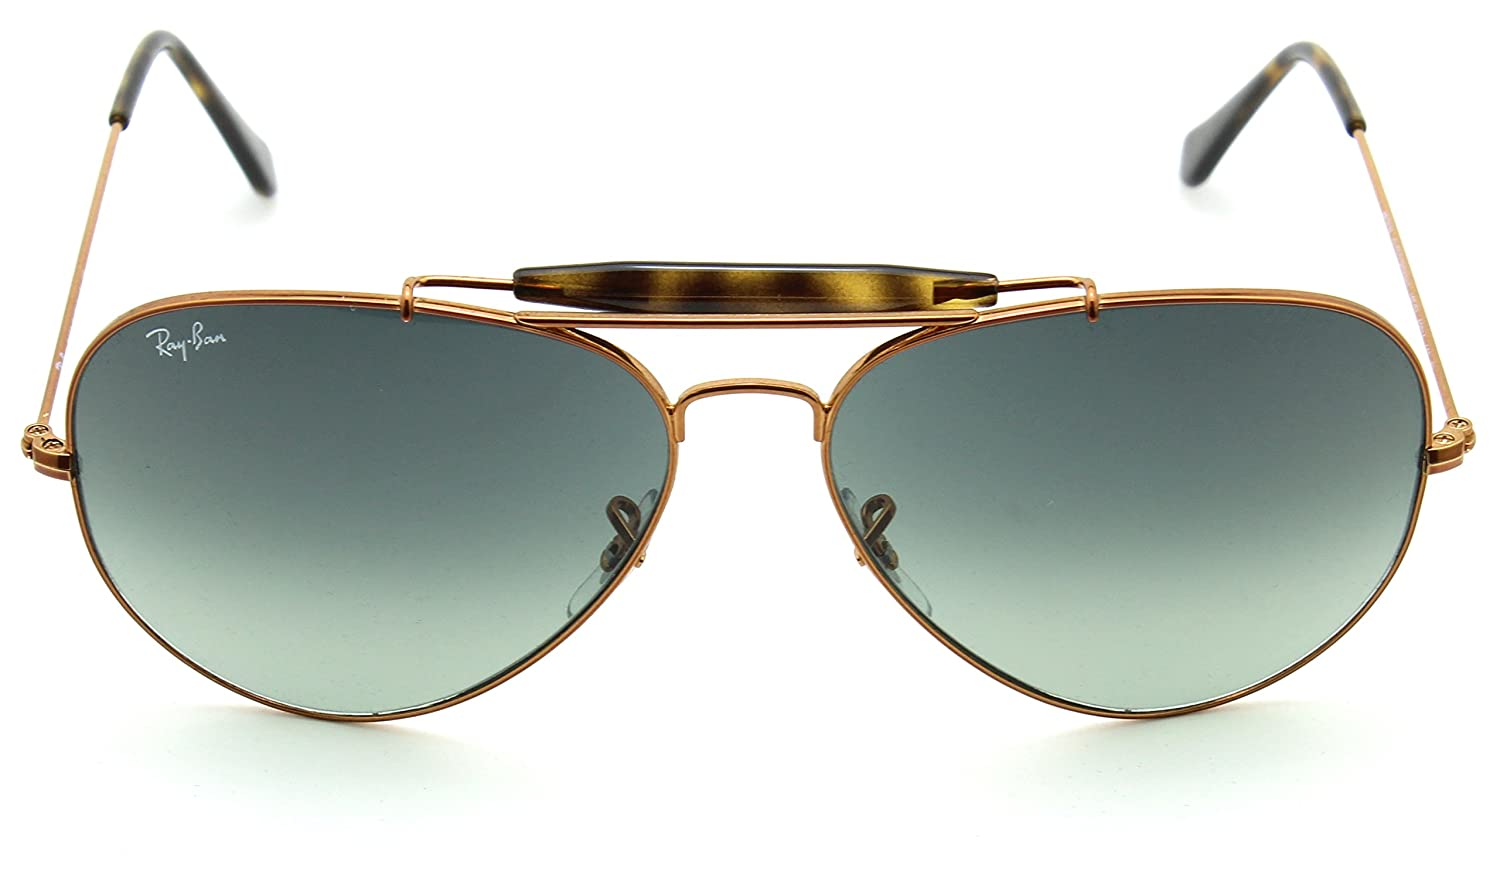 14ac3b926 Amazon.com: Ray-Ban RB3029 197/71 OUTDOORSMAN II Grey Gradient Aviator  Sunglasses 62mm: Clothing